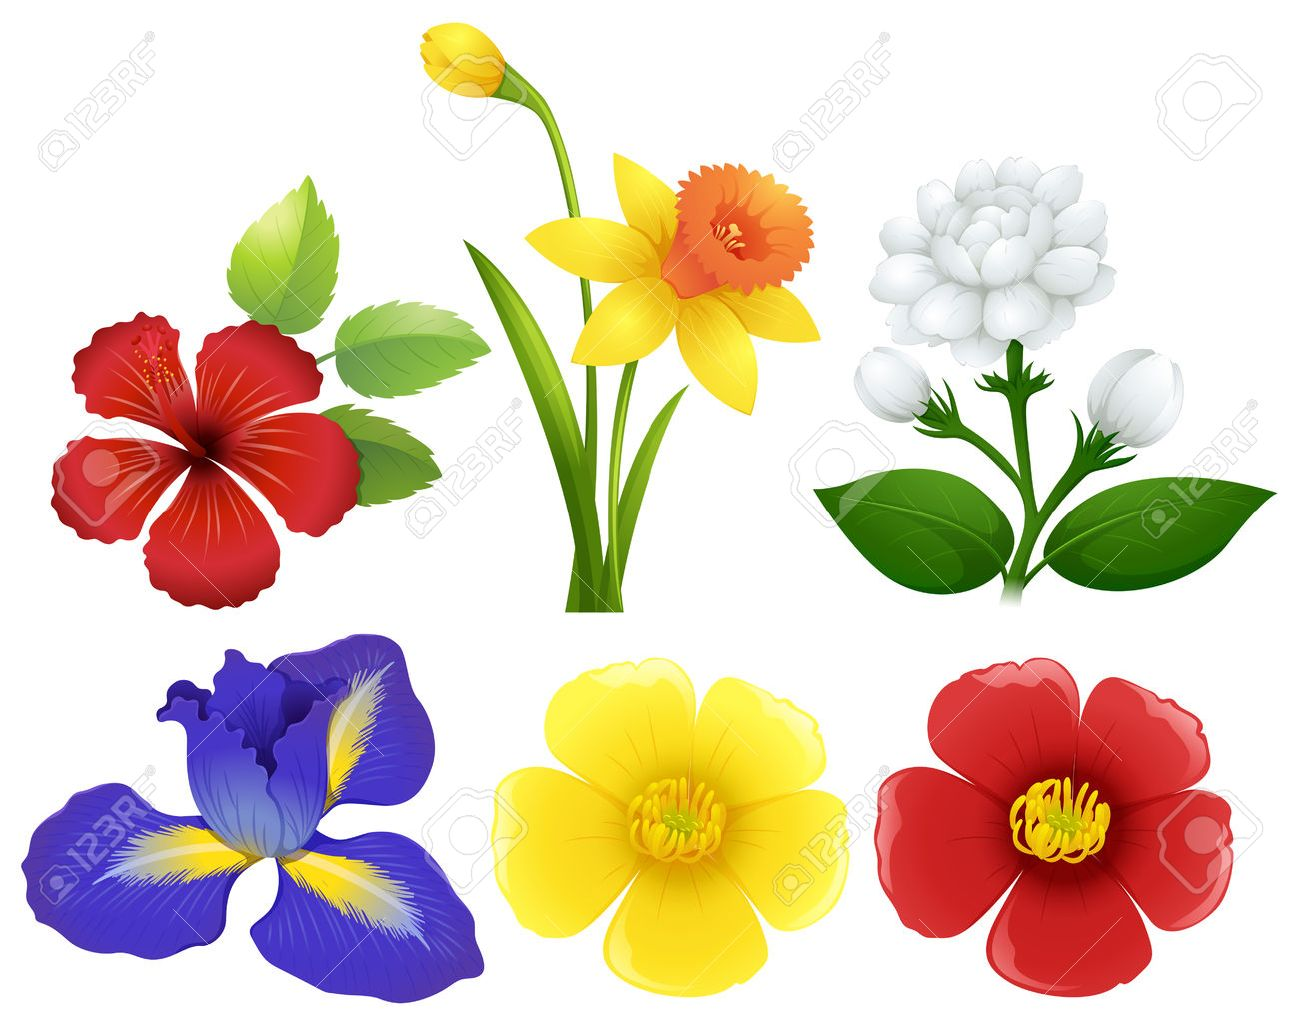 Different types of flowers illustration.